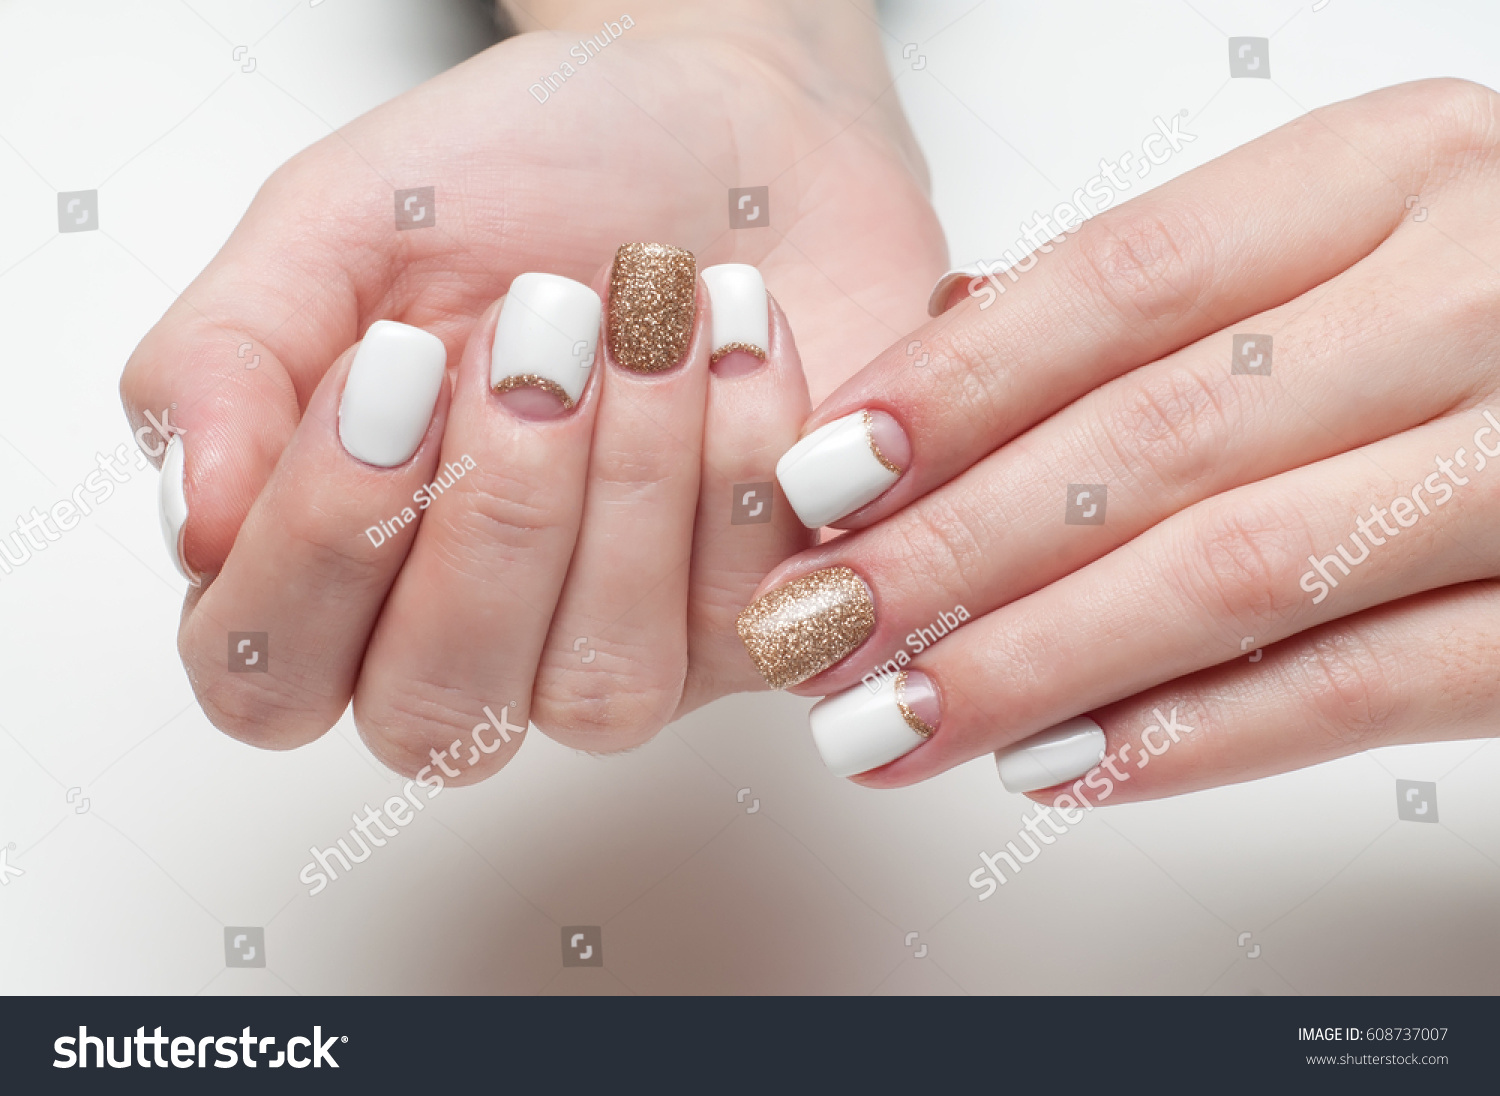 White Golden Manicure On Square Long Stock Photo 608737007 ...